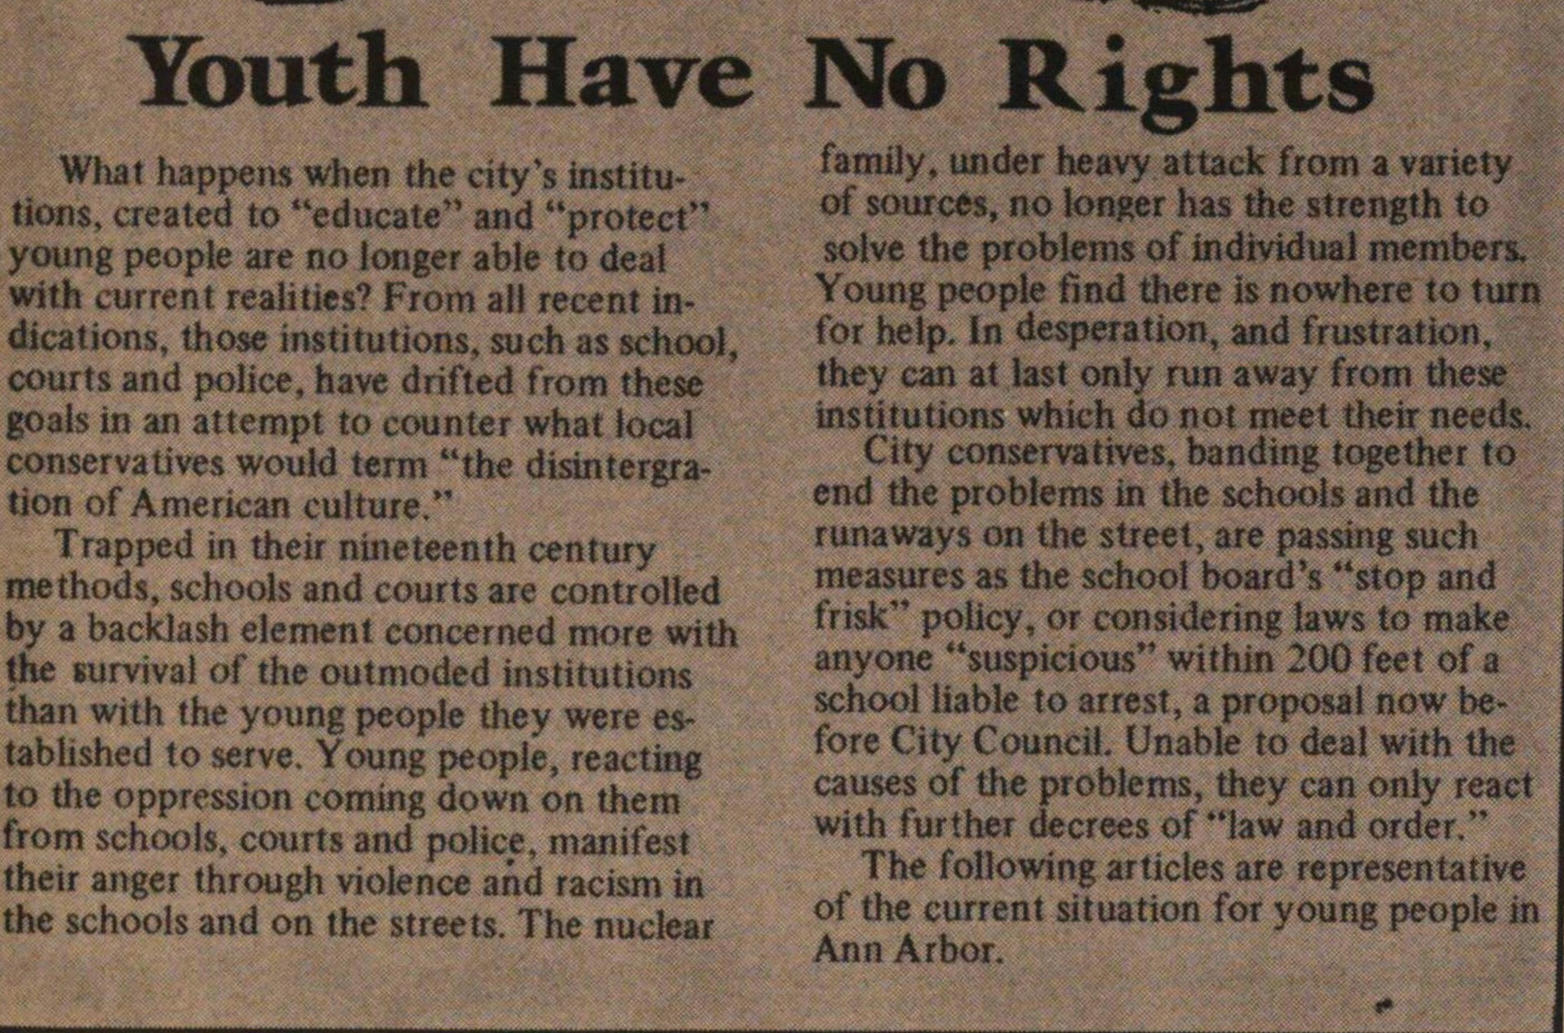 Youth Have No Rights image